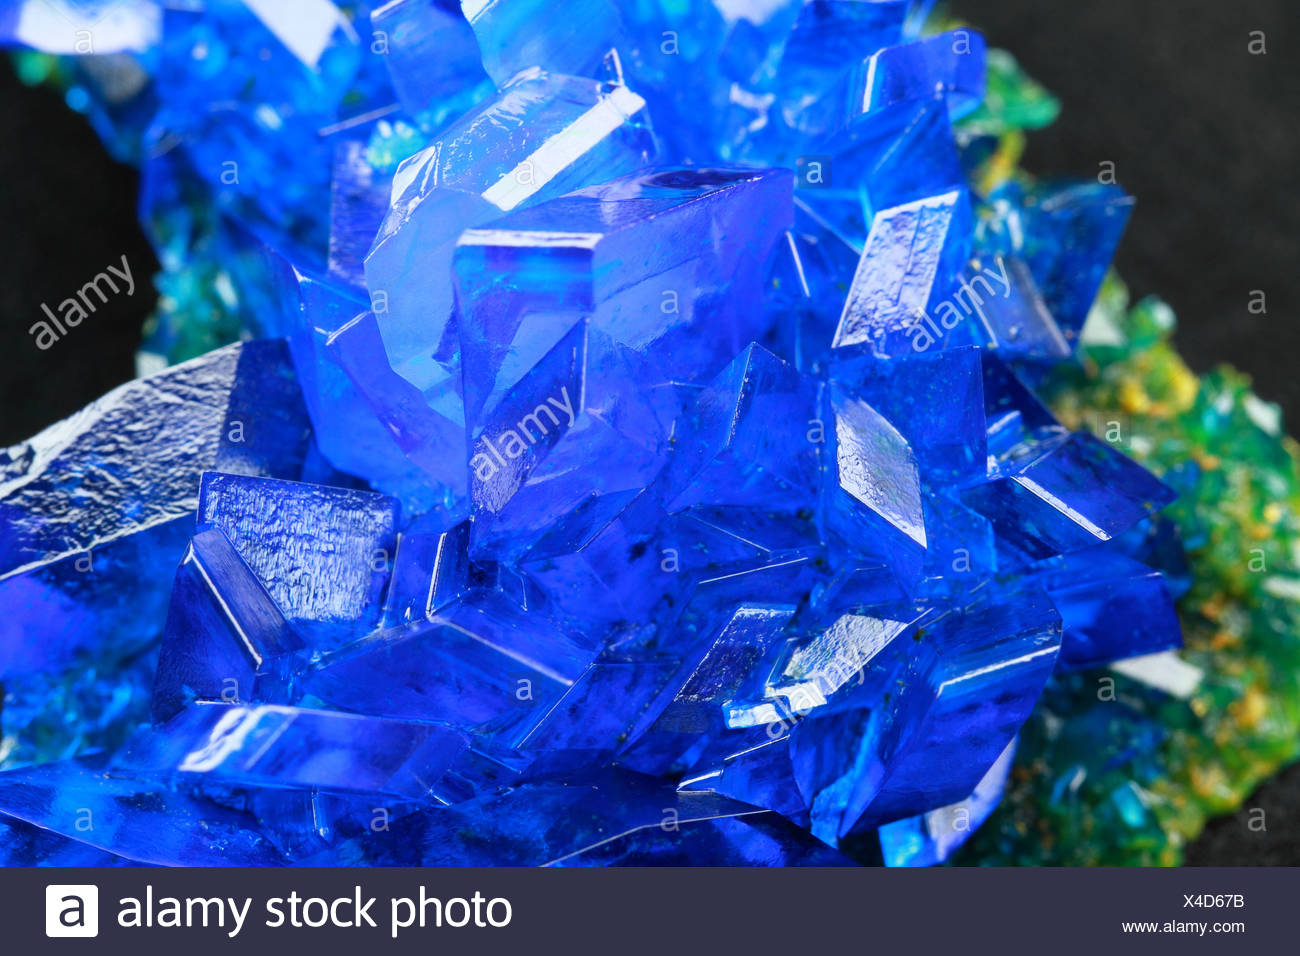 Copper Sulphate Stock Photos & Copper Sulphate Stock Images - Alamy